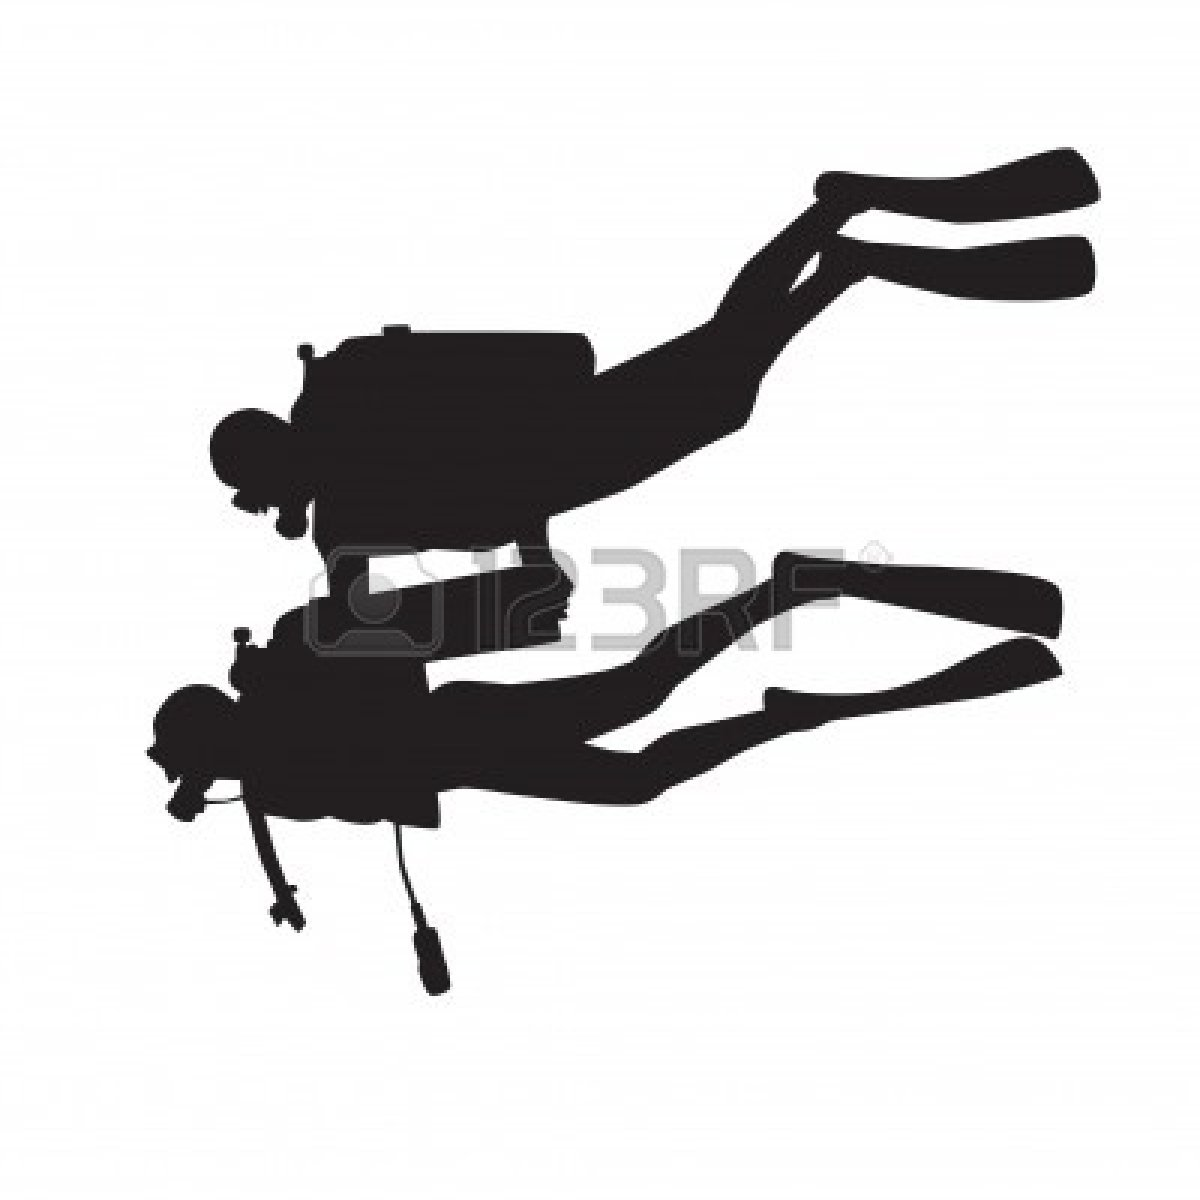 1200x1200 Free Cliff Diving Clipart